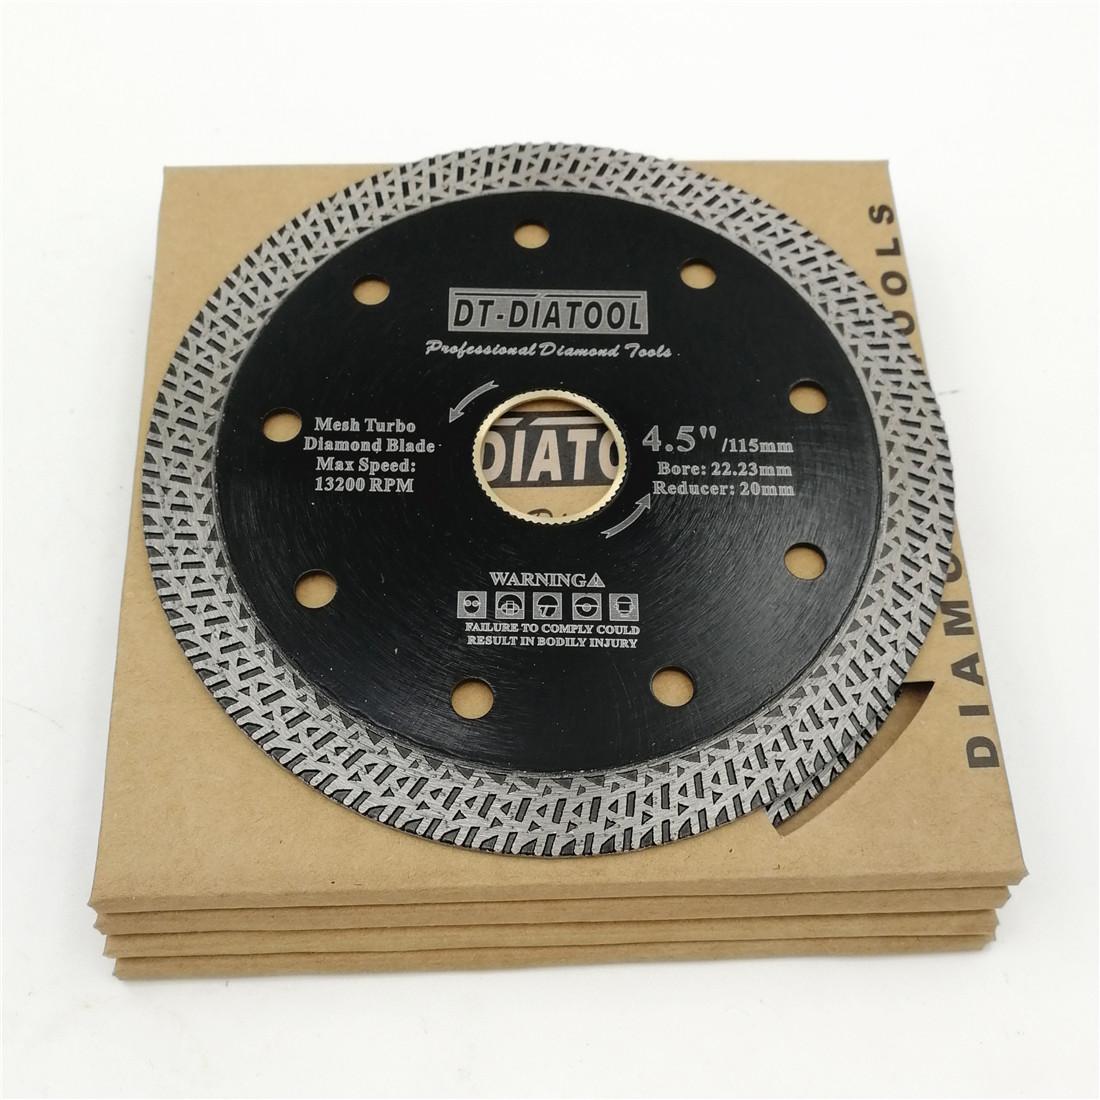 DT-DIATOOL 5pks/set  4 or 5inch Hot pressed Disc Diamond Cutting Wheel Mesh Turbo Saw blade Diameter 115mm 125mm Hard materials 2pk diamond double row grinding cup wheel for granite and hard material diameter 4 5 115mm bore 22 23mm with 16mm washer